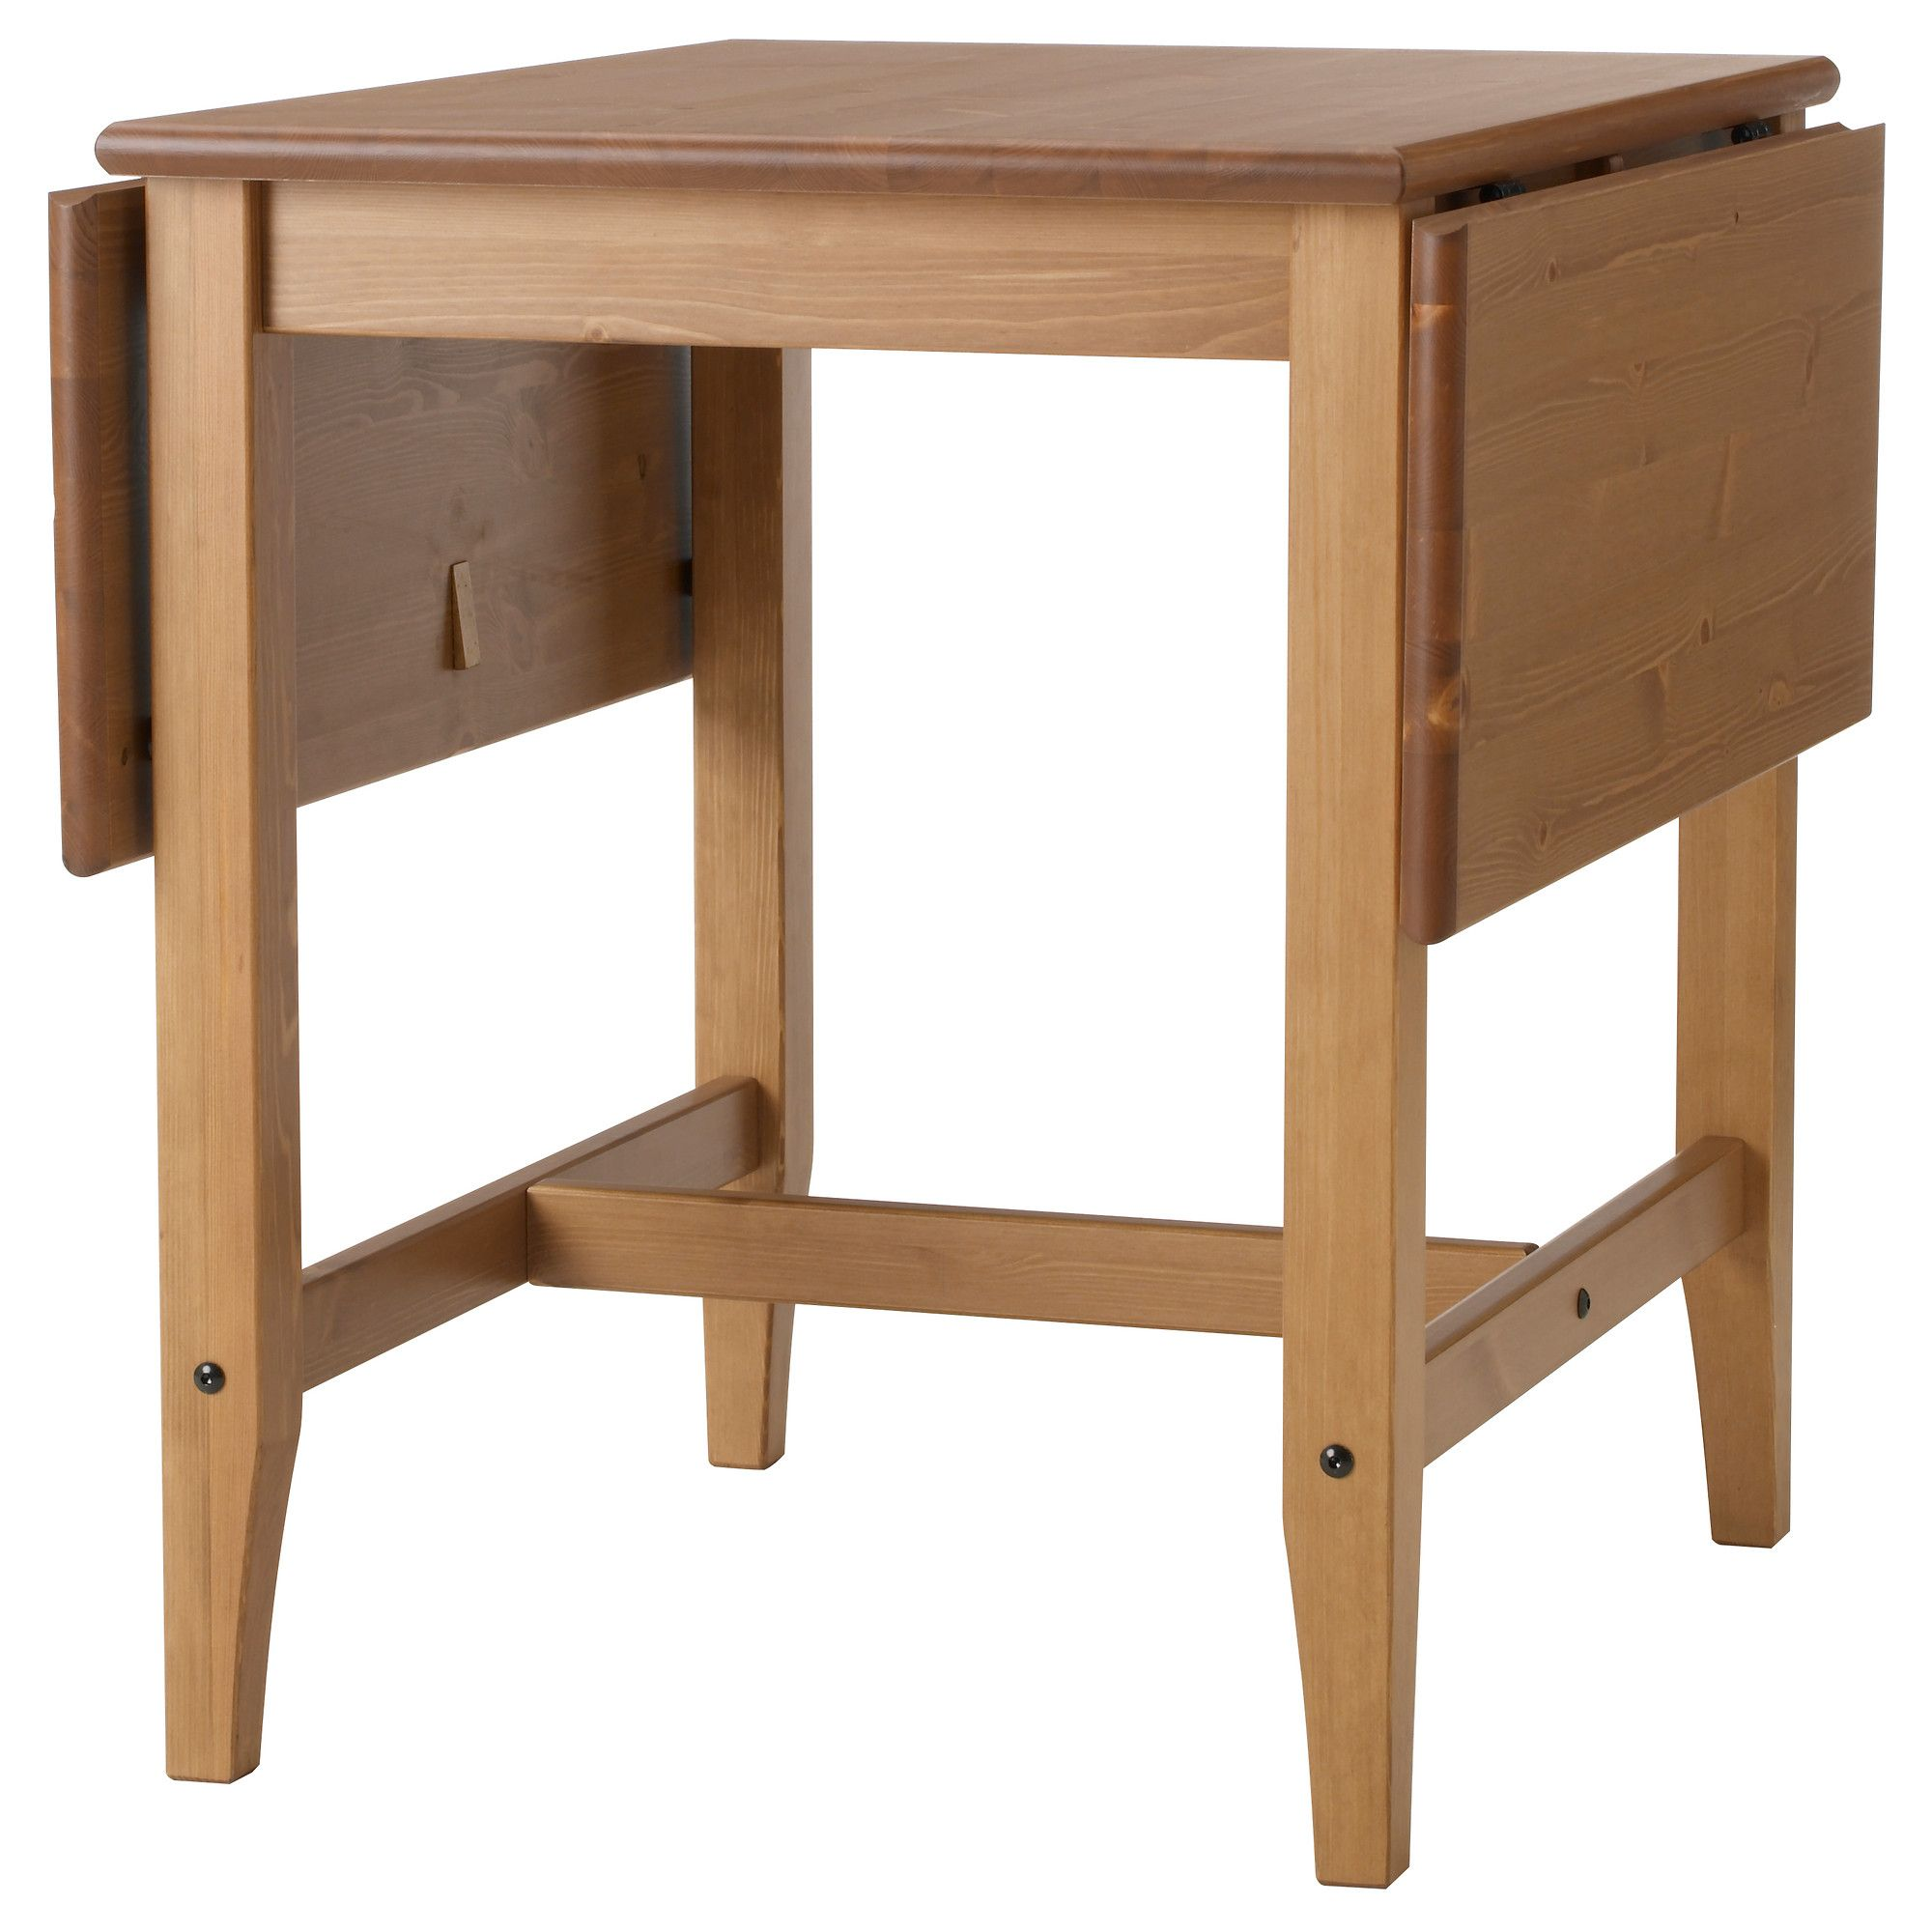 LEKSVIK Drop leaf table 59 119 x 78 x 74H solid pine birch clear